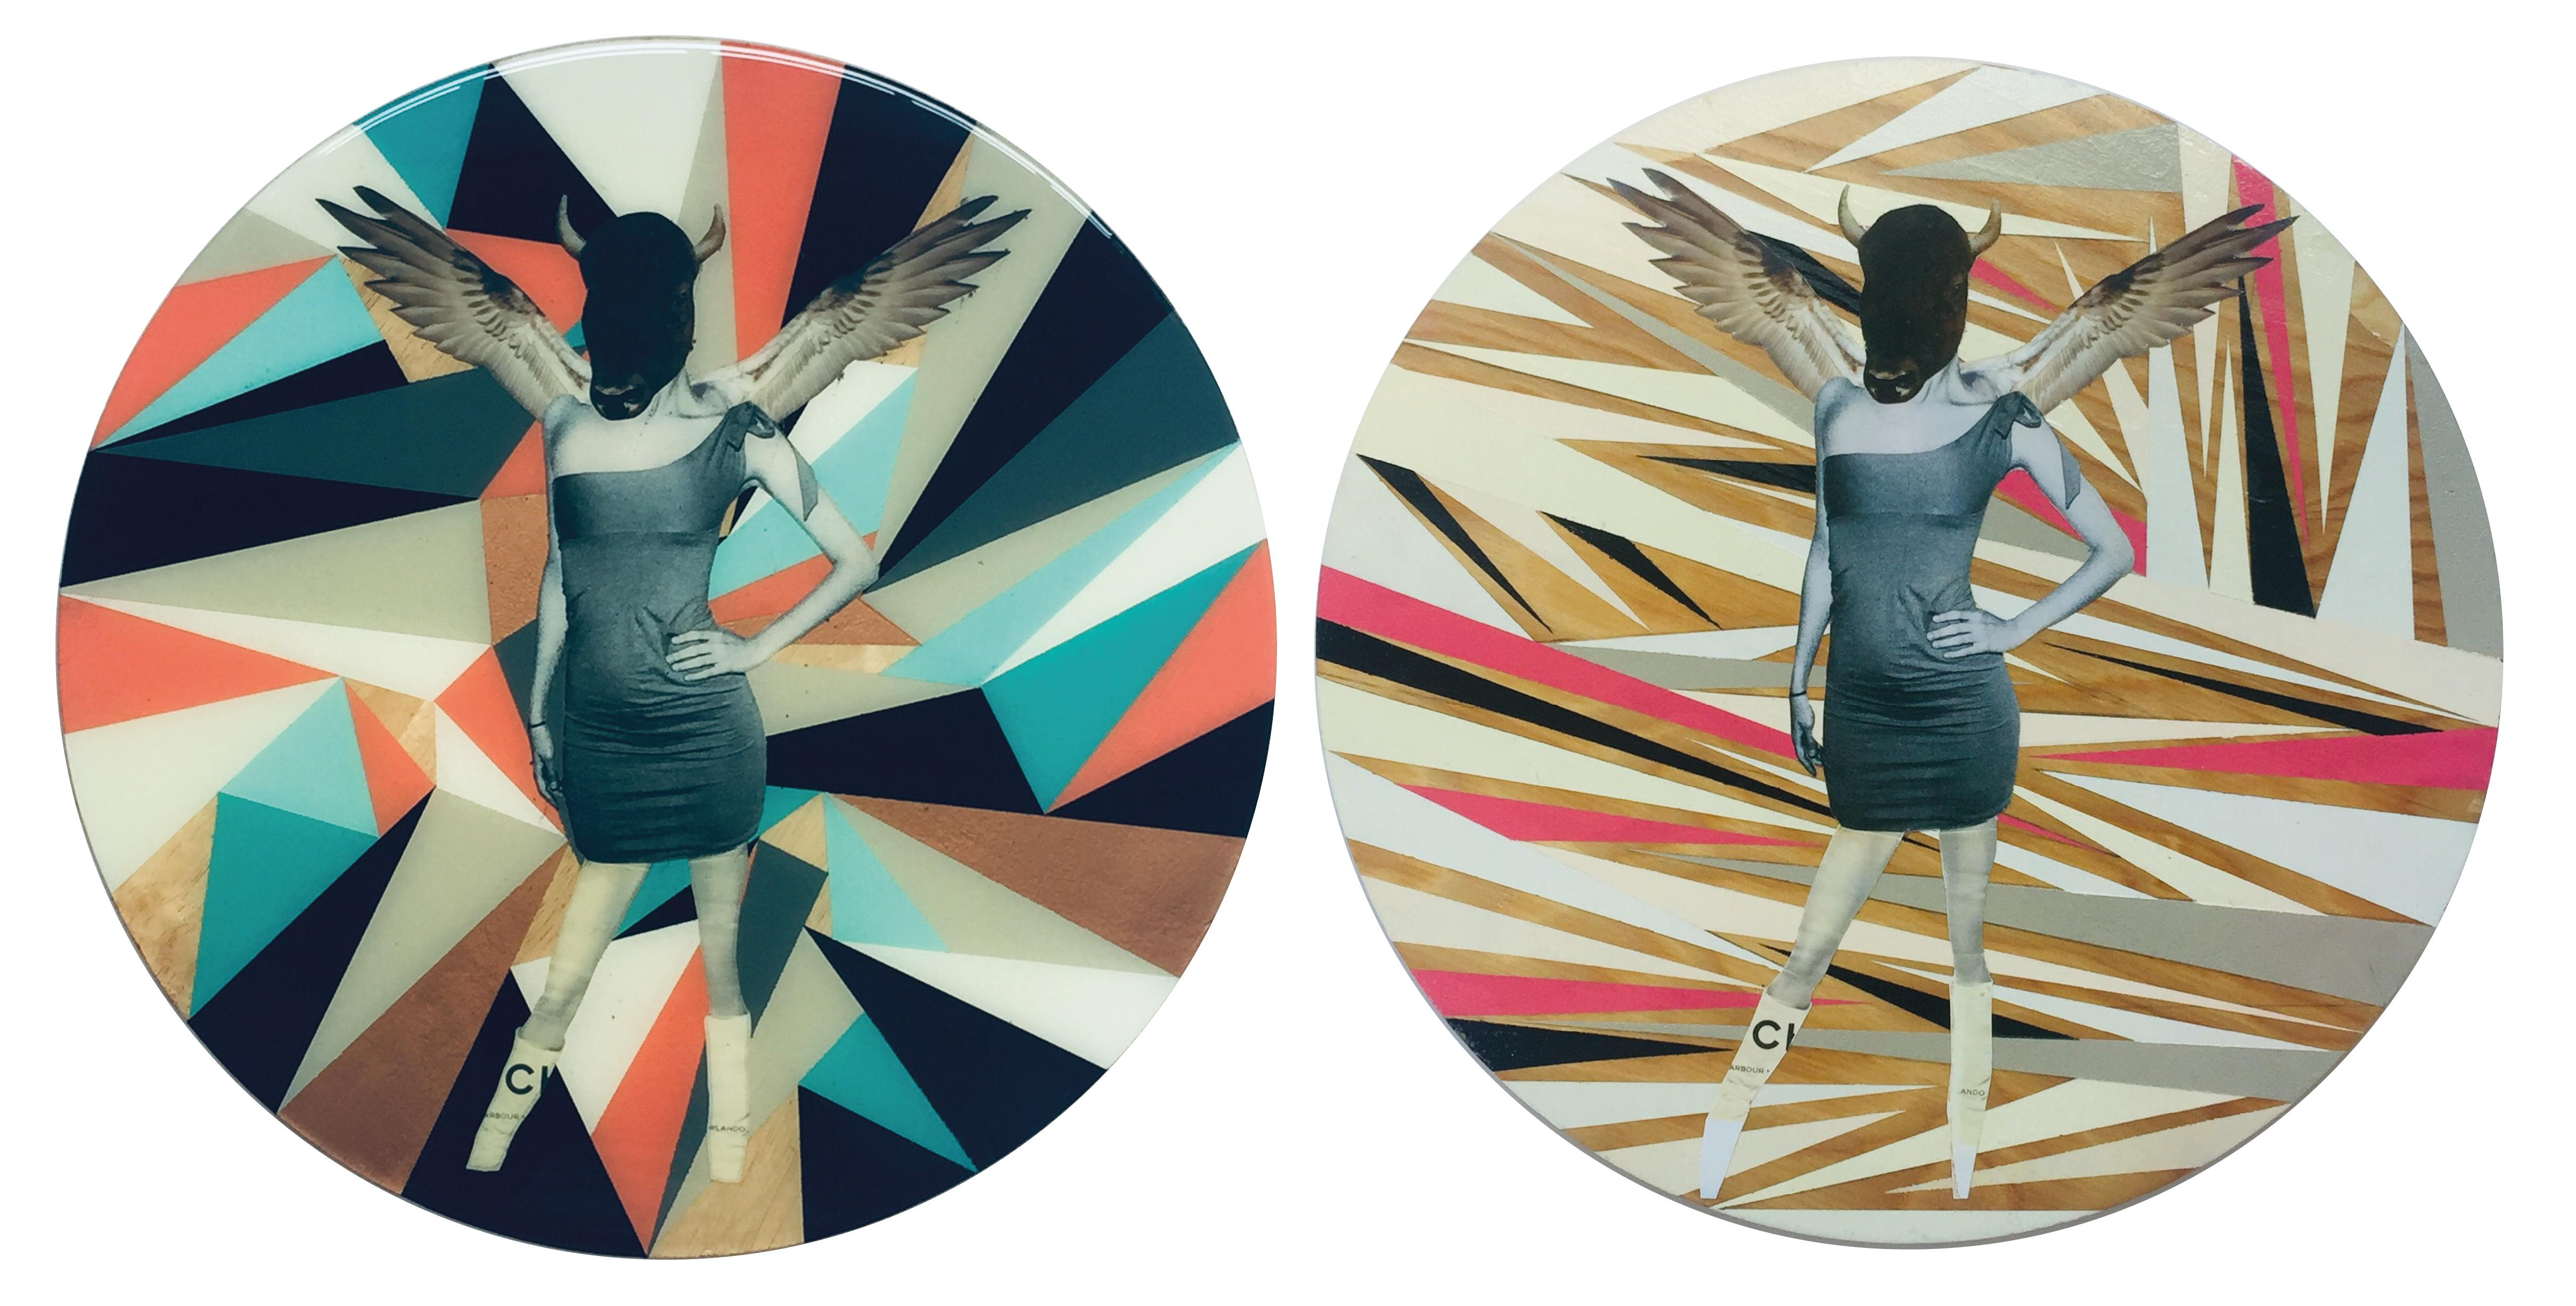 Untitled No.9 and Untitled No.11 Diptych, Mixed Media on Wood